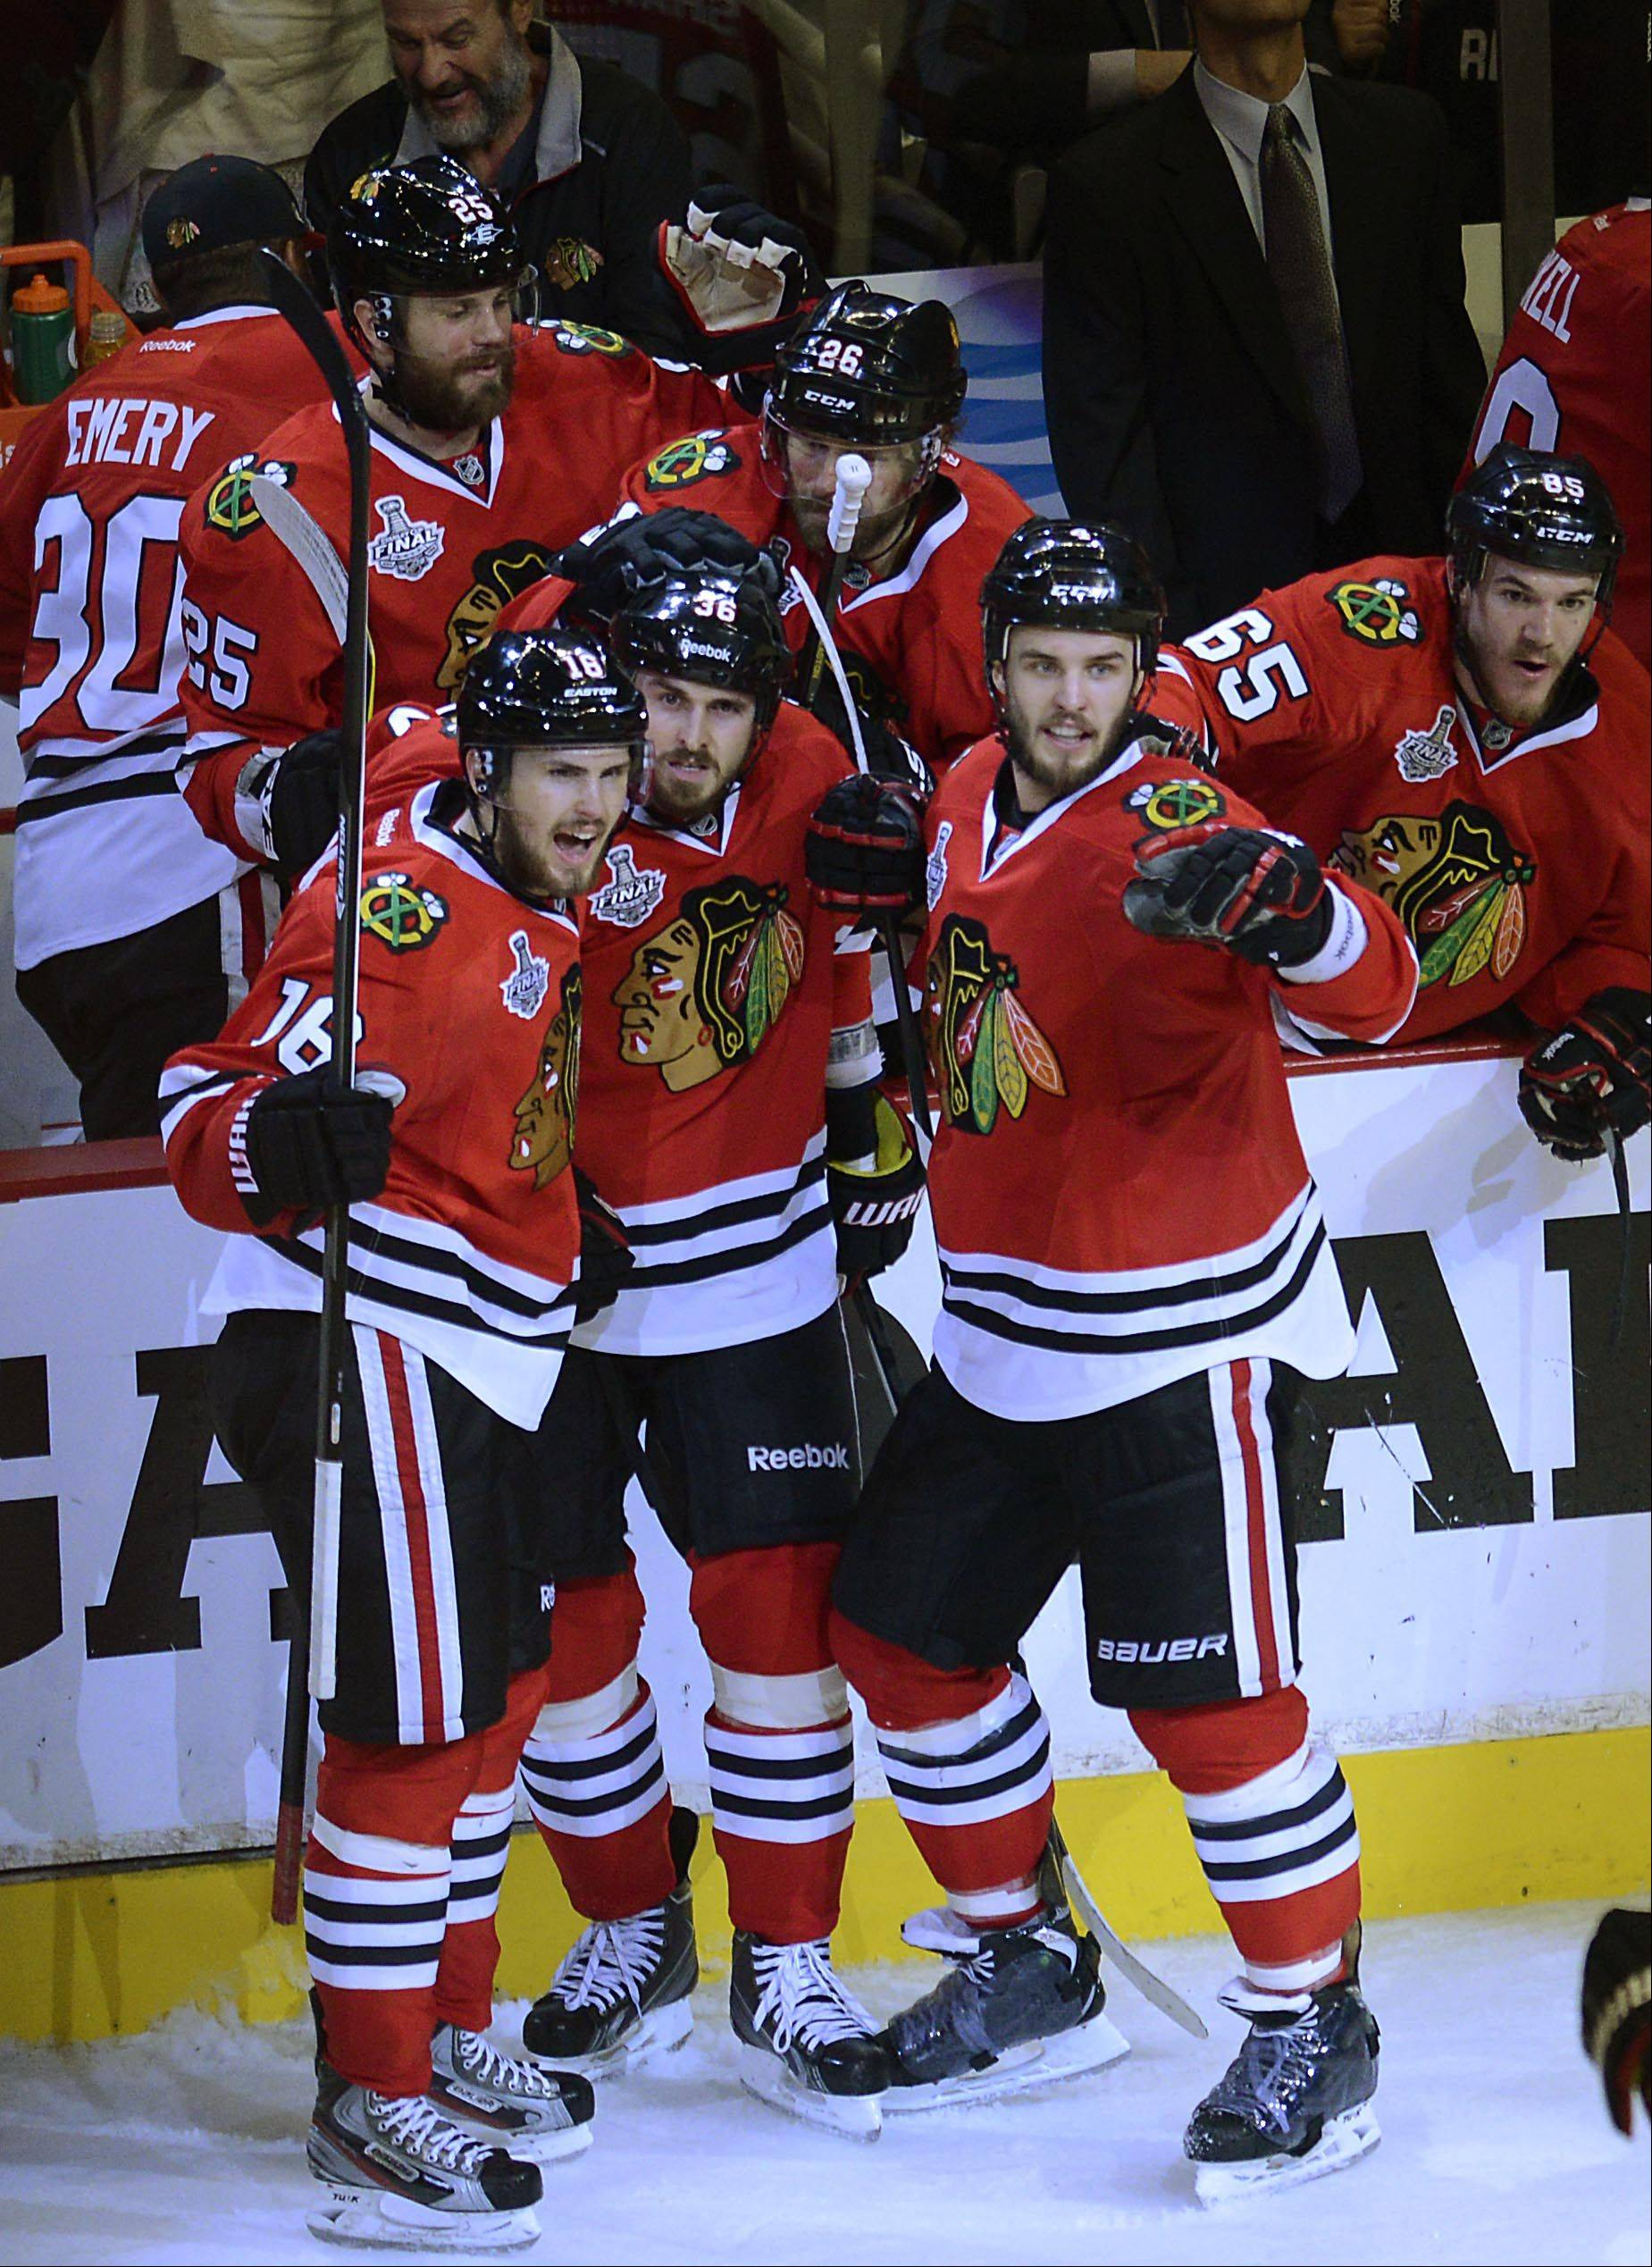 Chicago Blackhawks center Dave Bolland is surrounded by teammates after his empty-net goal late in the third period that sealed the win over the Boston Bruins Saturday in Game 5 of the Stanley Cup Finals at the United Center in Chicago.